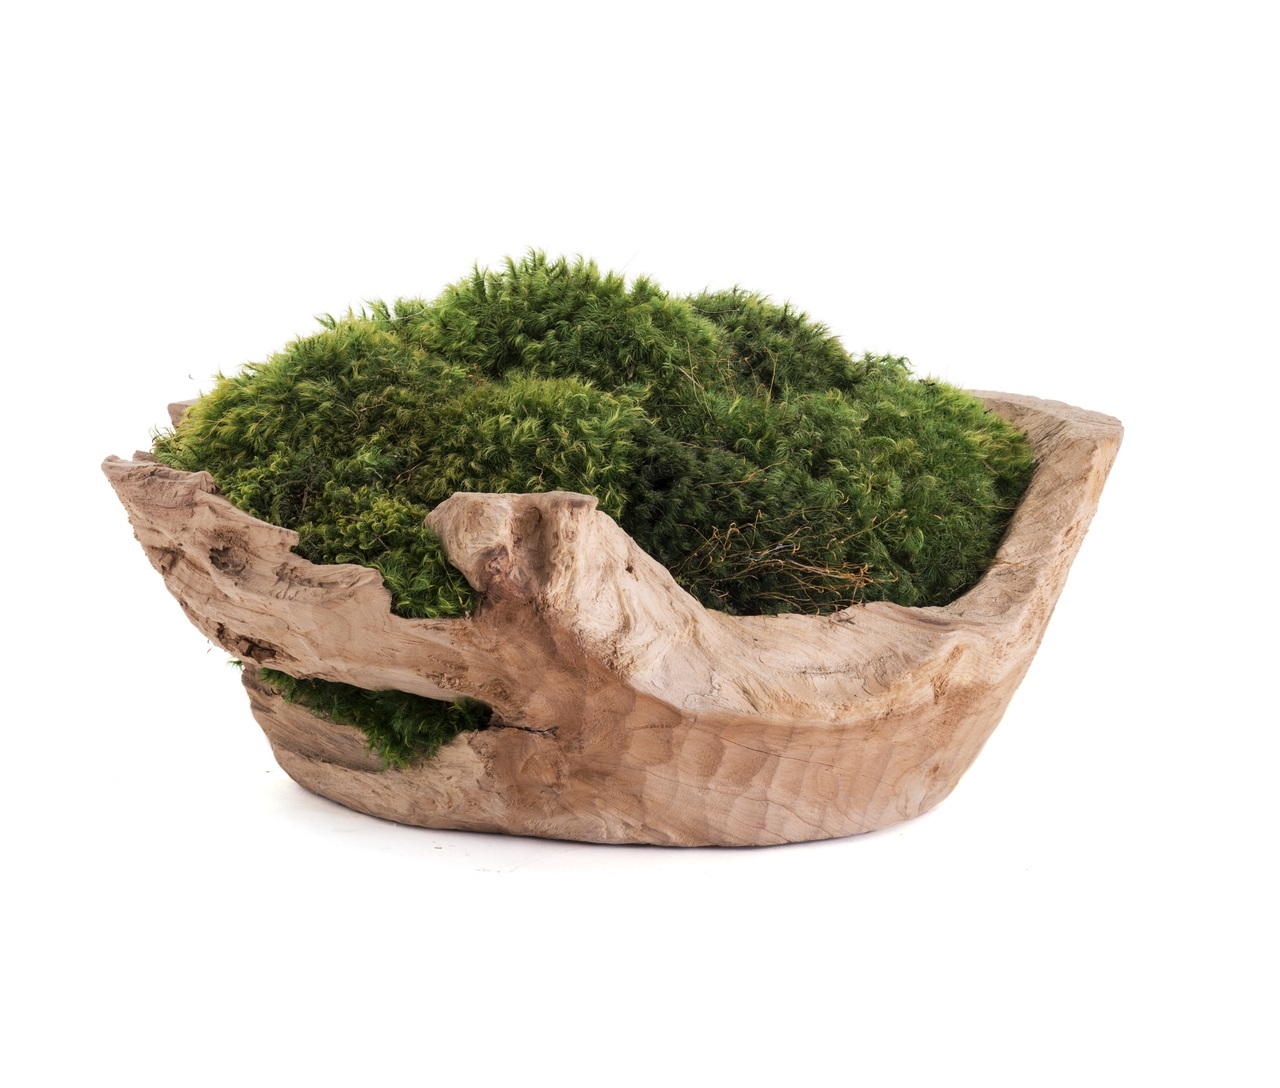 Moss centerpiece: Natural wood bowl with preserved moss